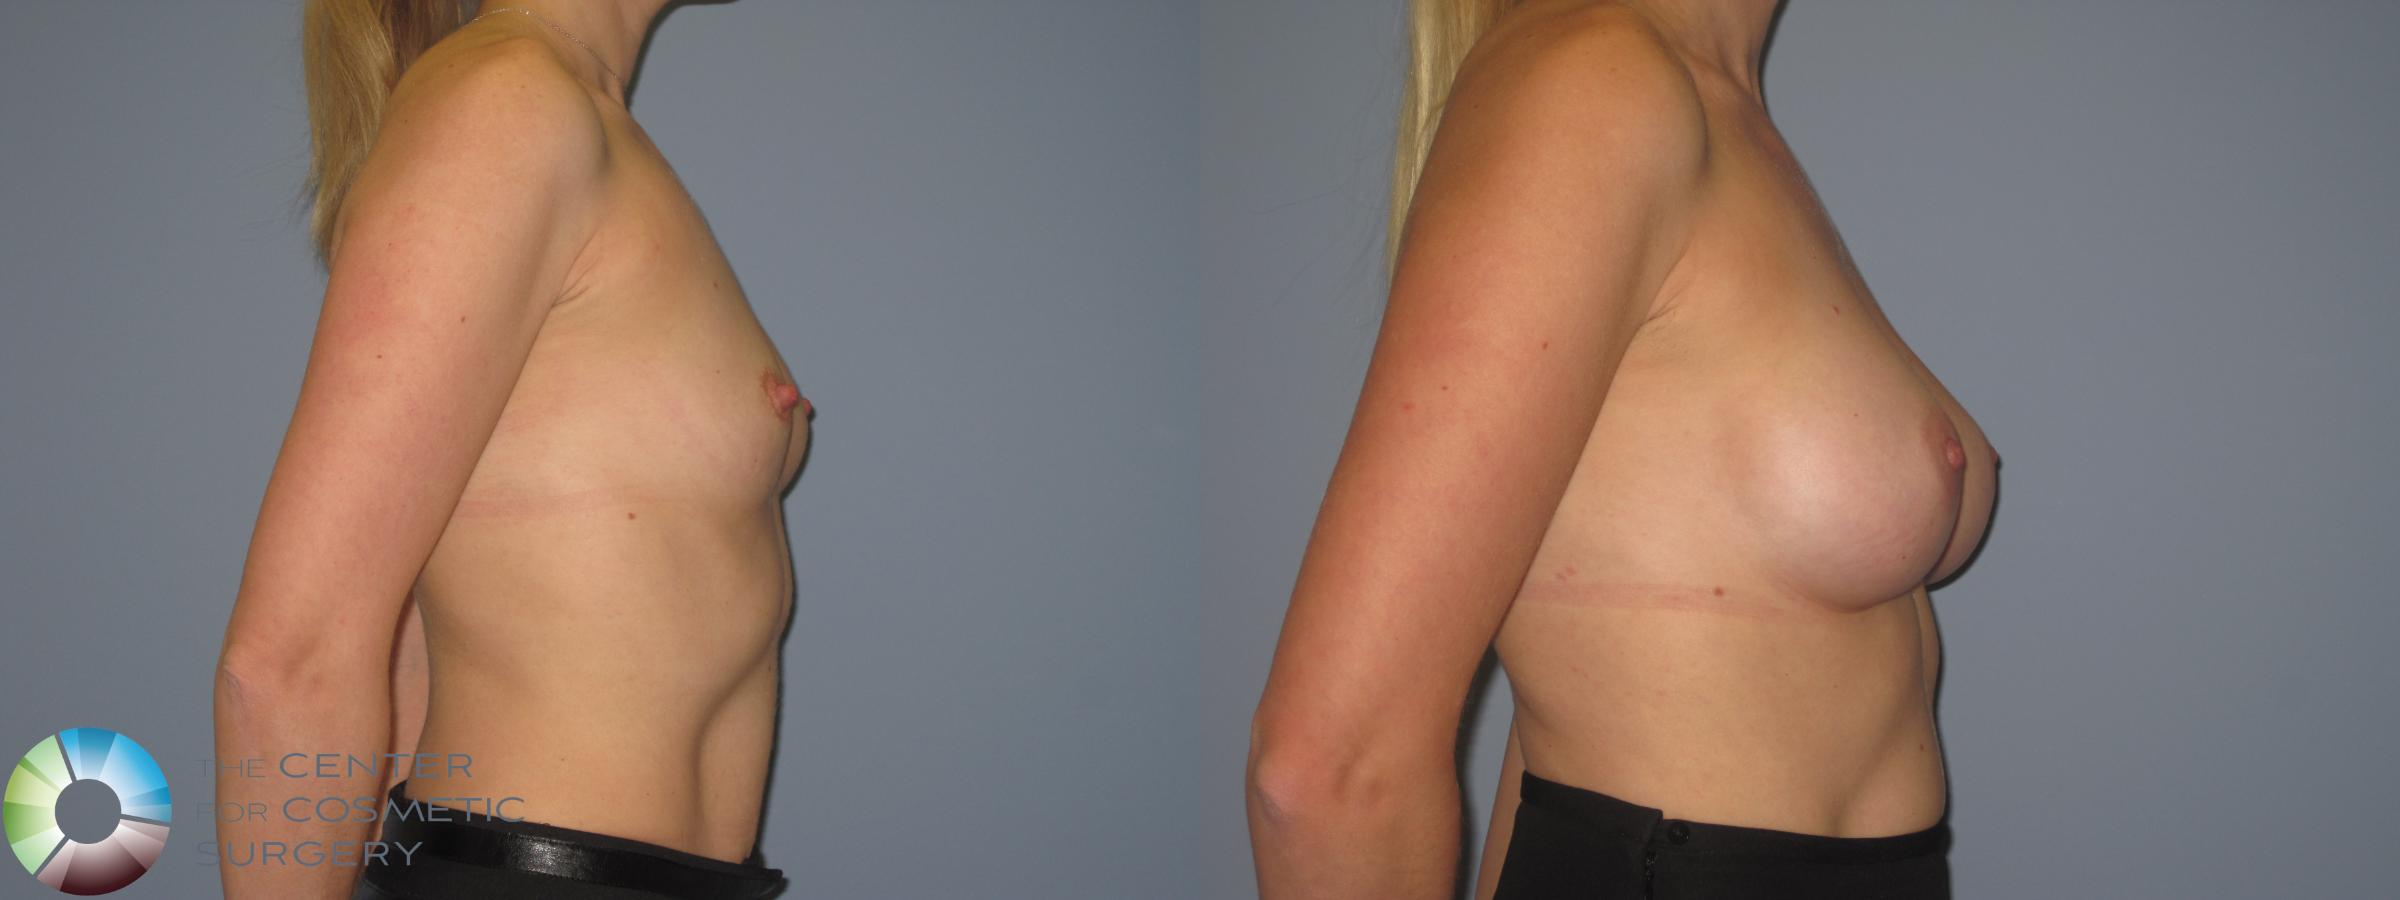 Breast Augmentation Case 848 Before & After View #3 | Golden, CO | The Center for Cosmetic Surgery